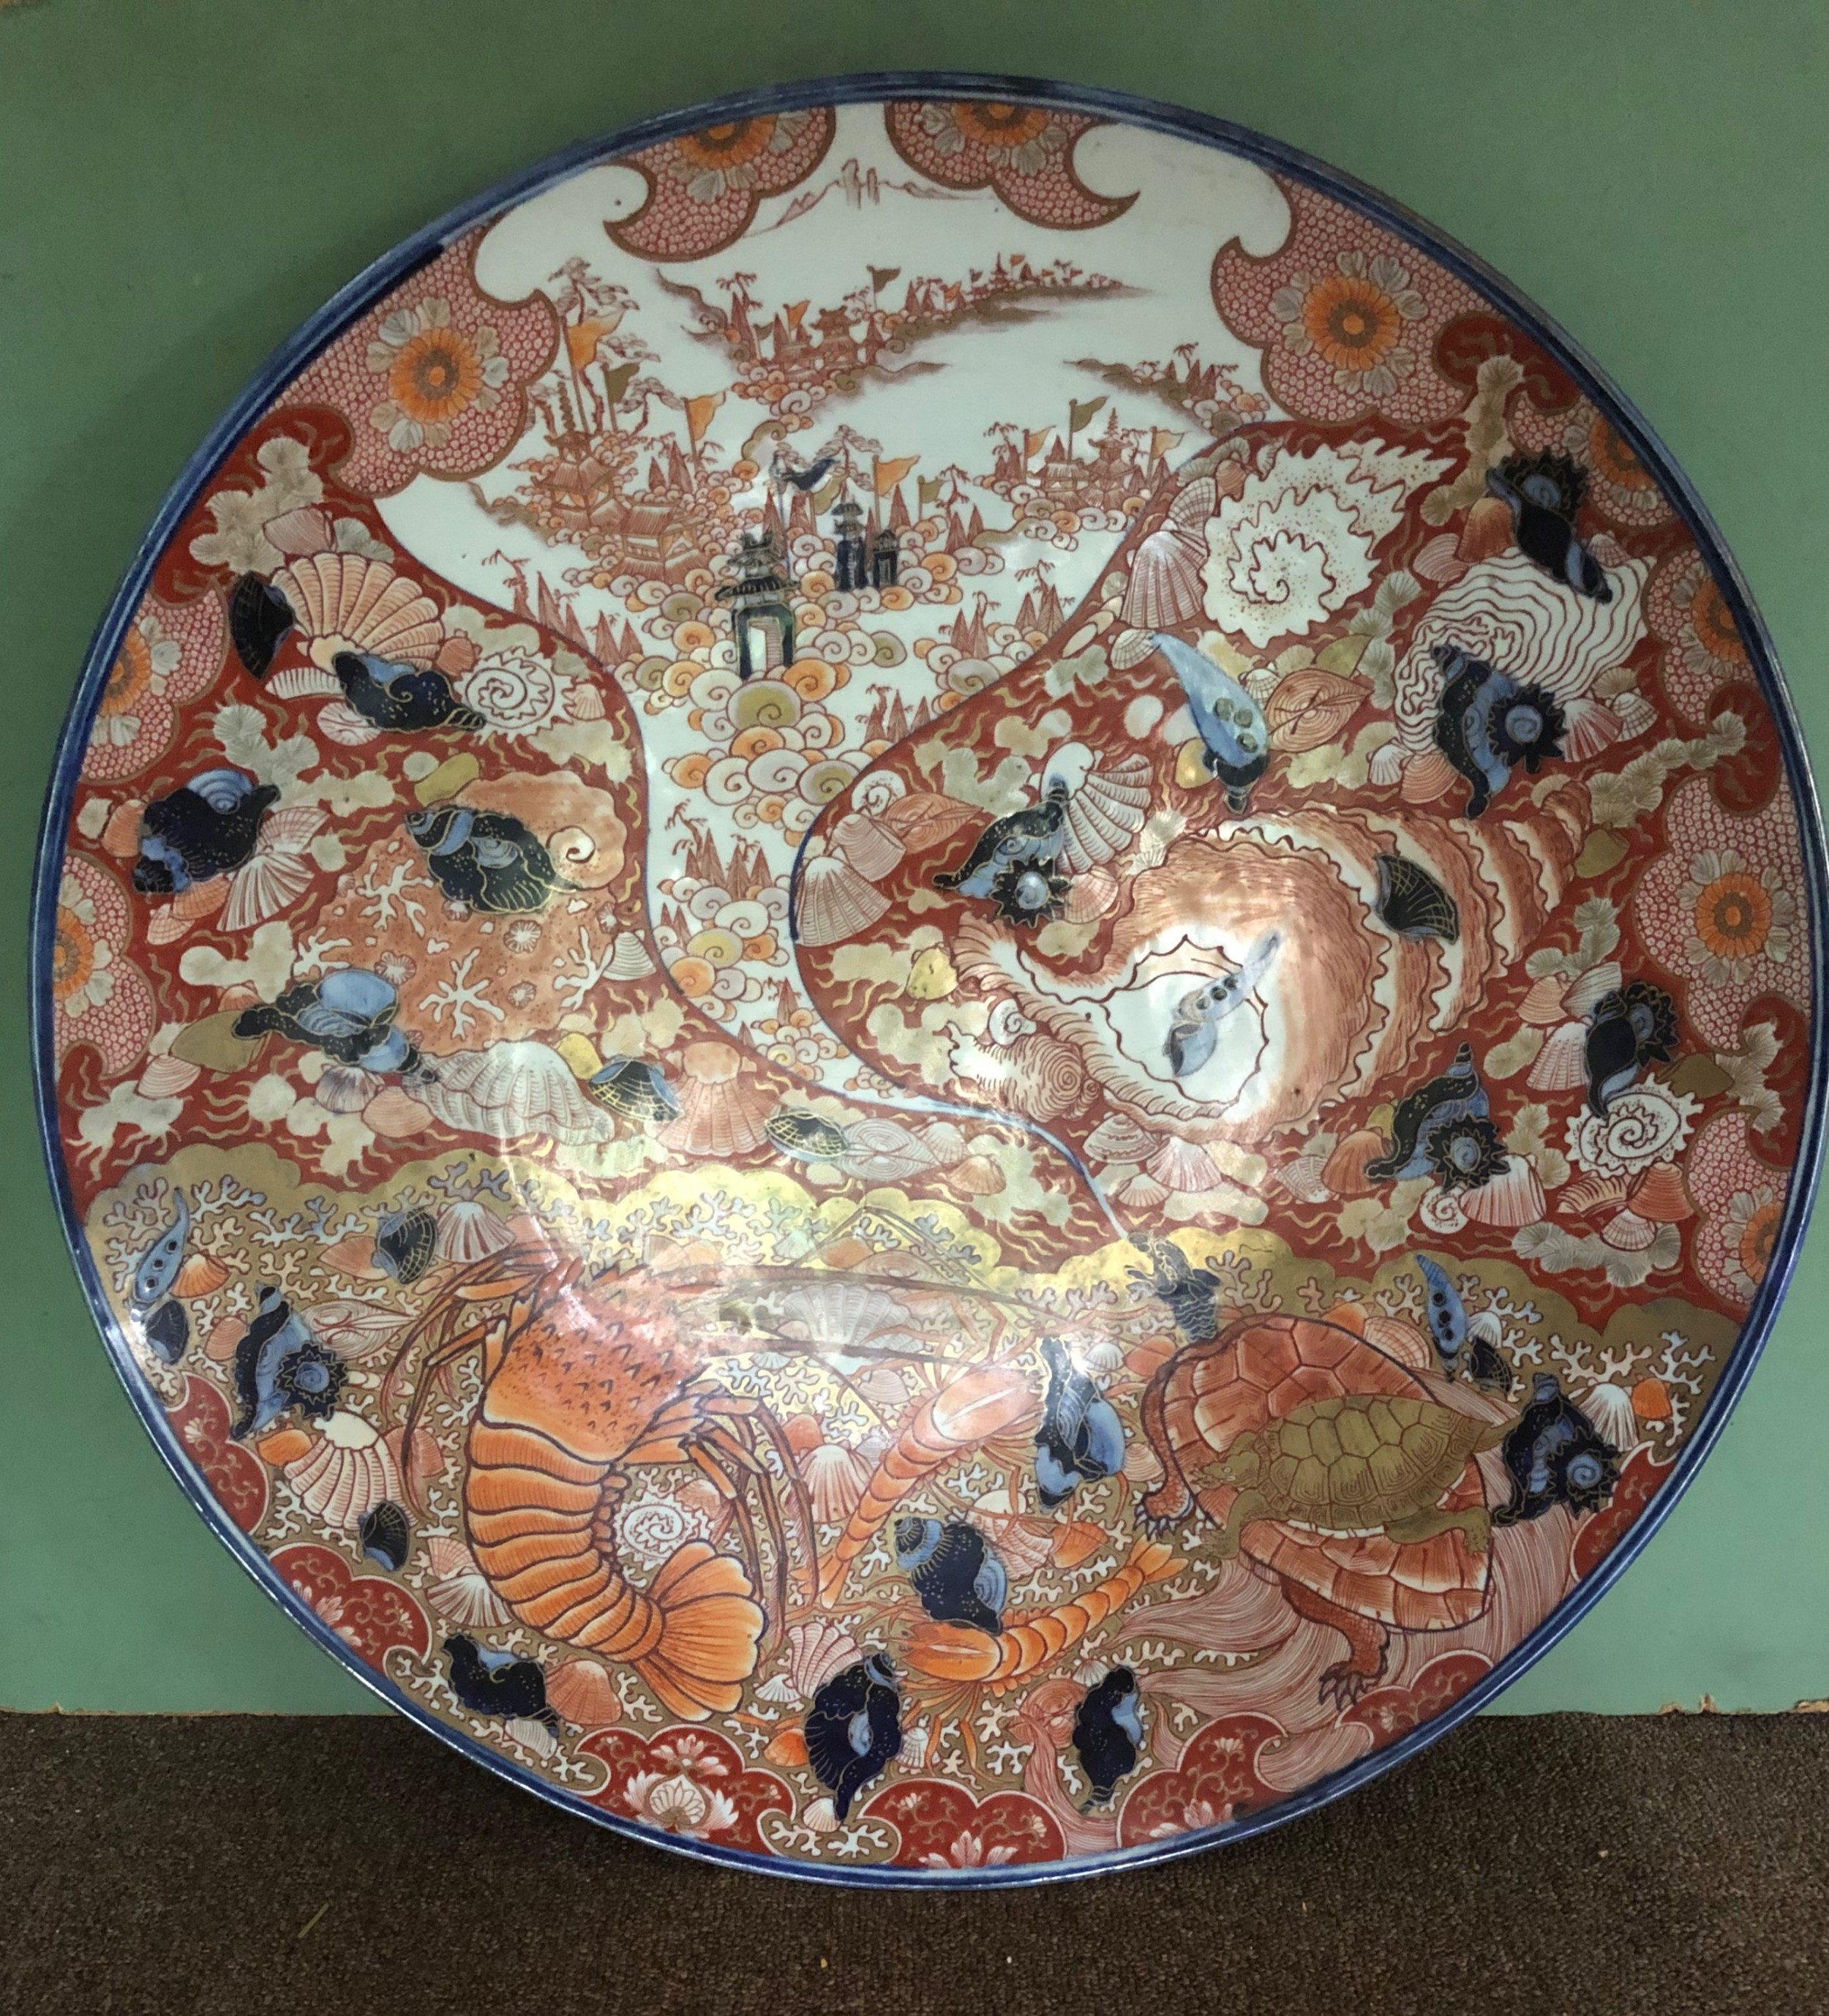 fine large late c19th japanese meiji period porcelain charger in the imari palette